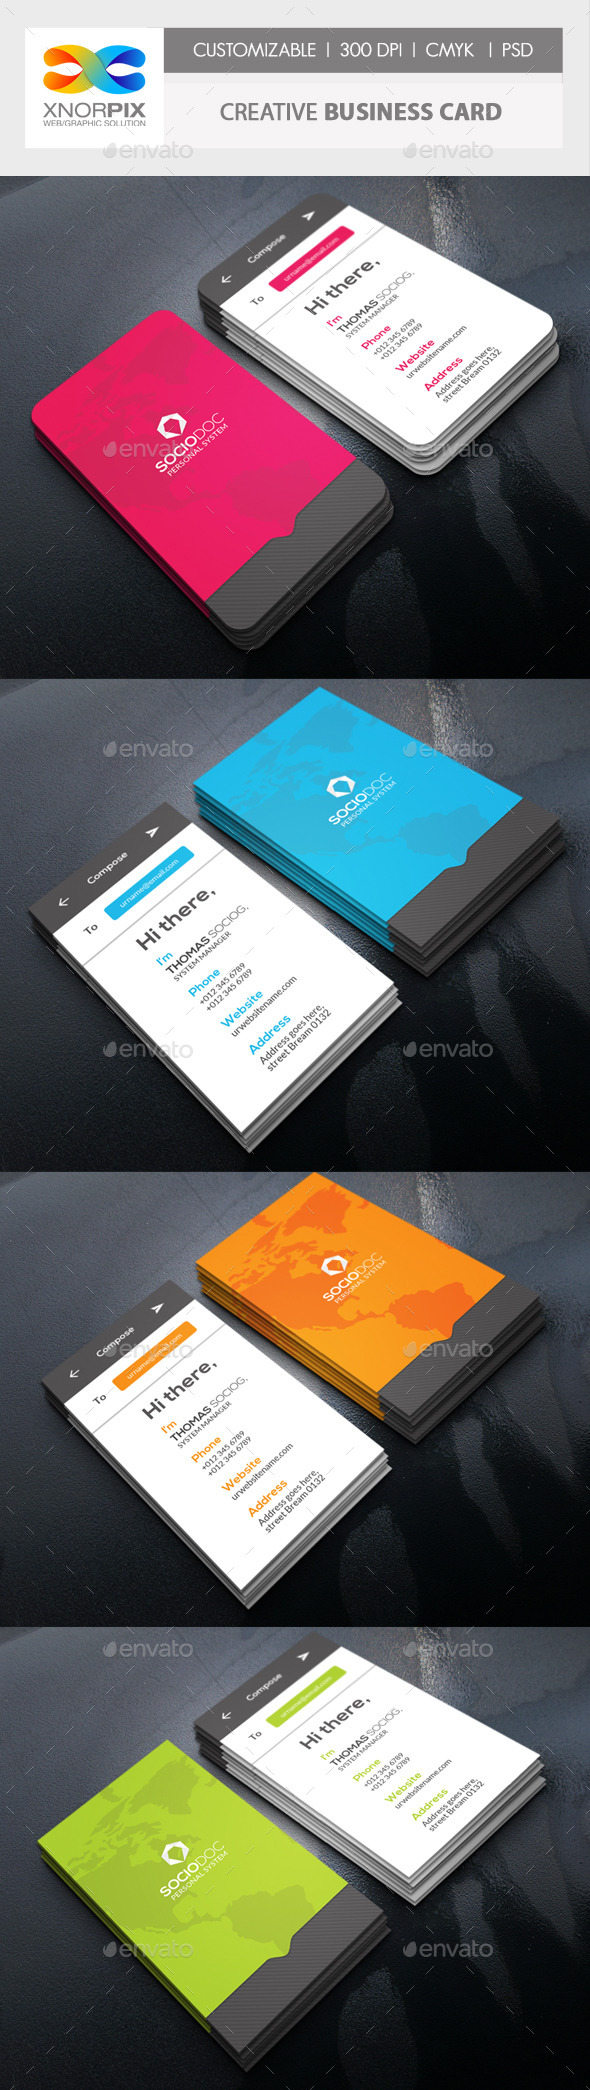 Message Business Card